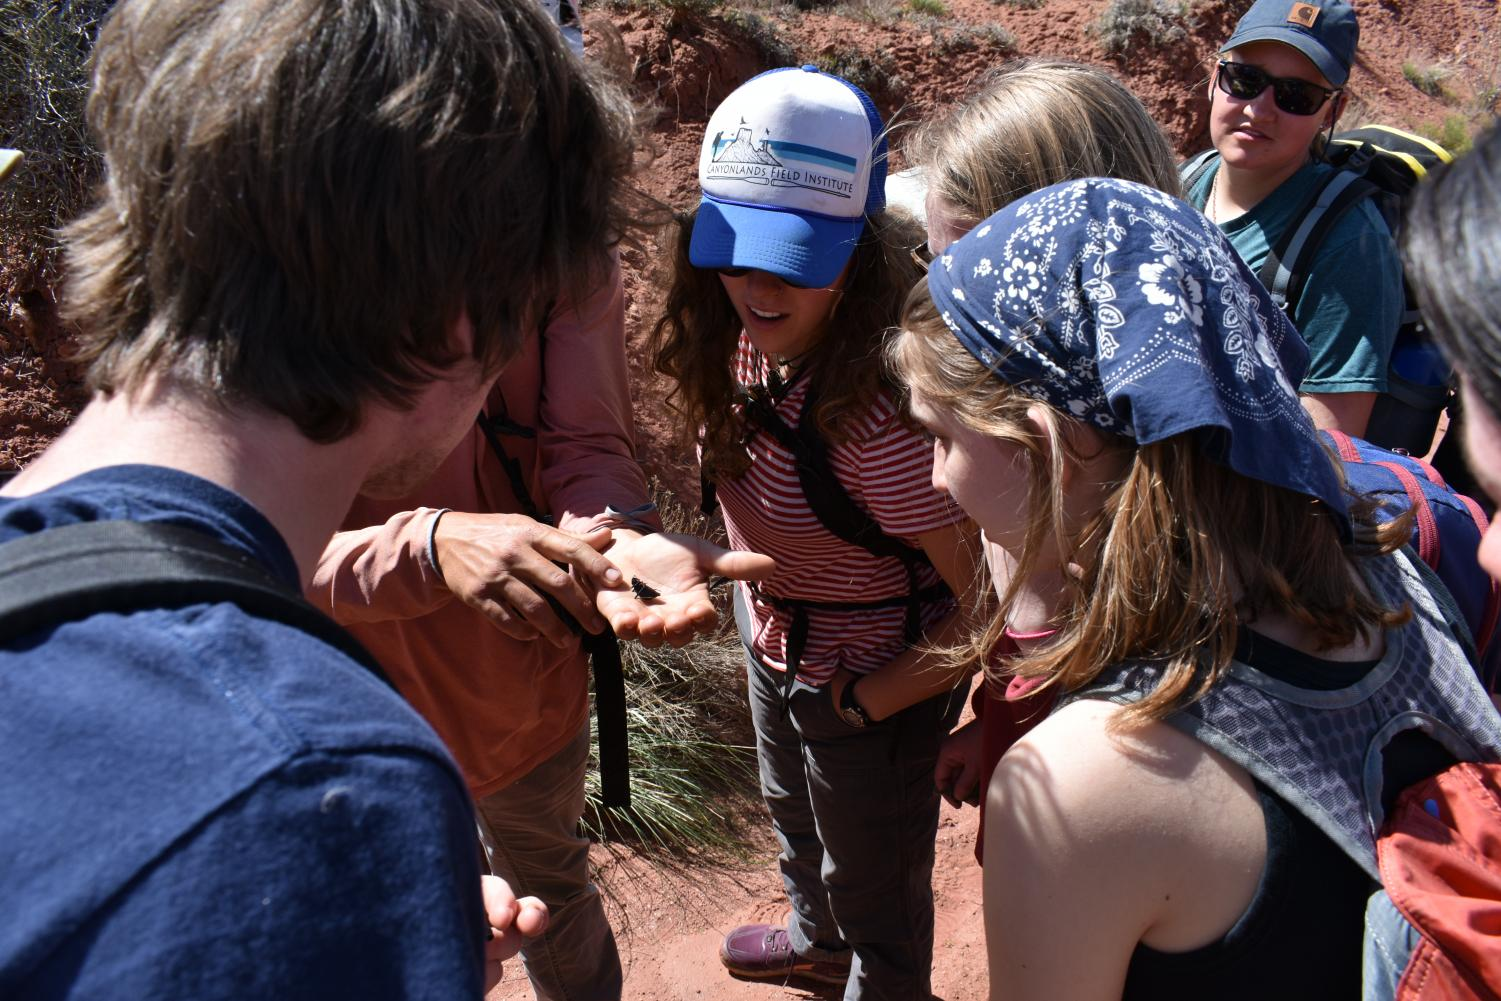 Students+learn+about+a+dead+beetle+that+was+found+while+on+a+hike.+